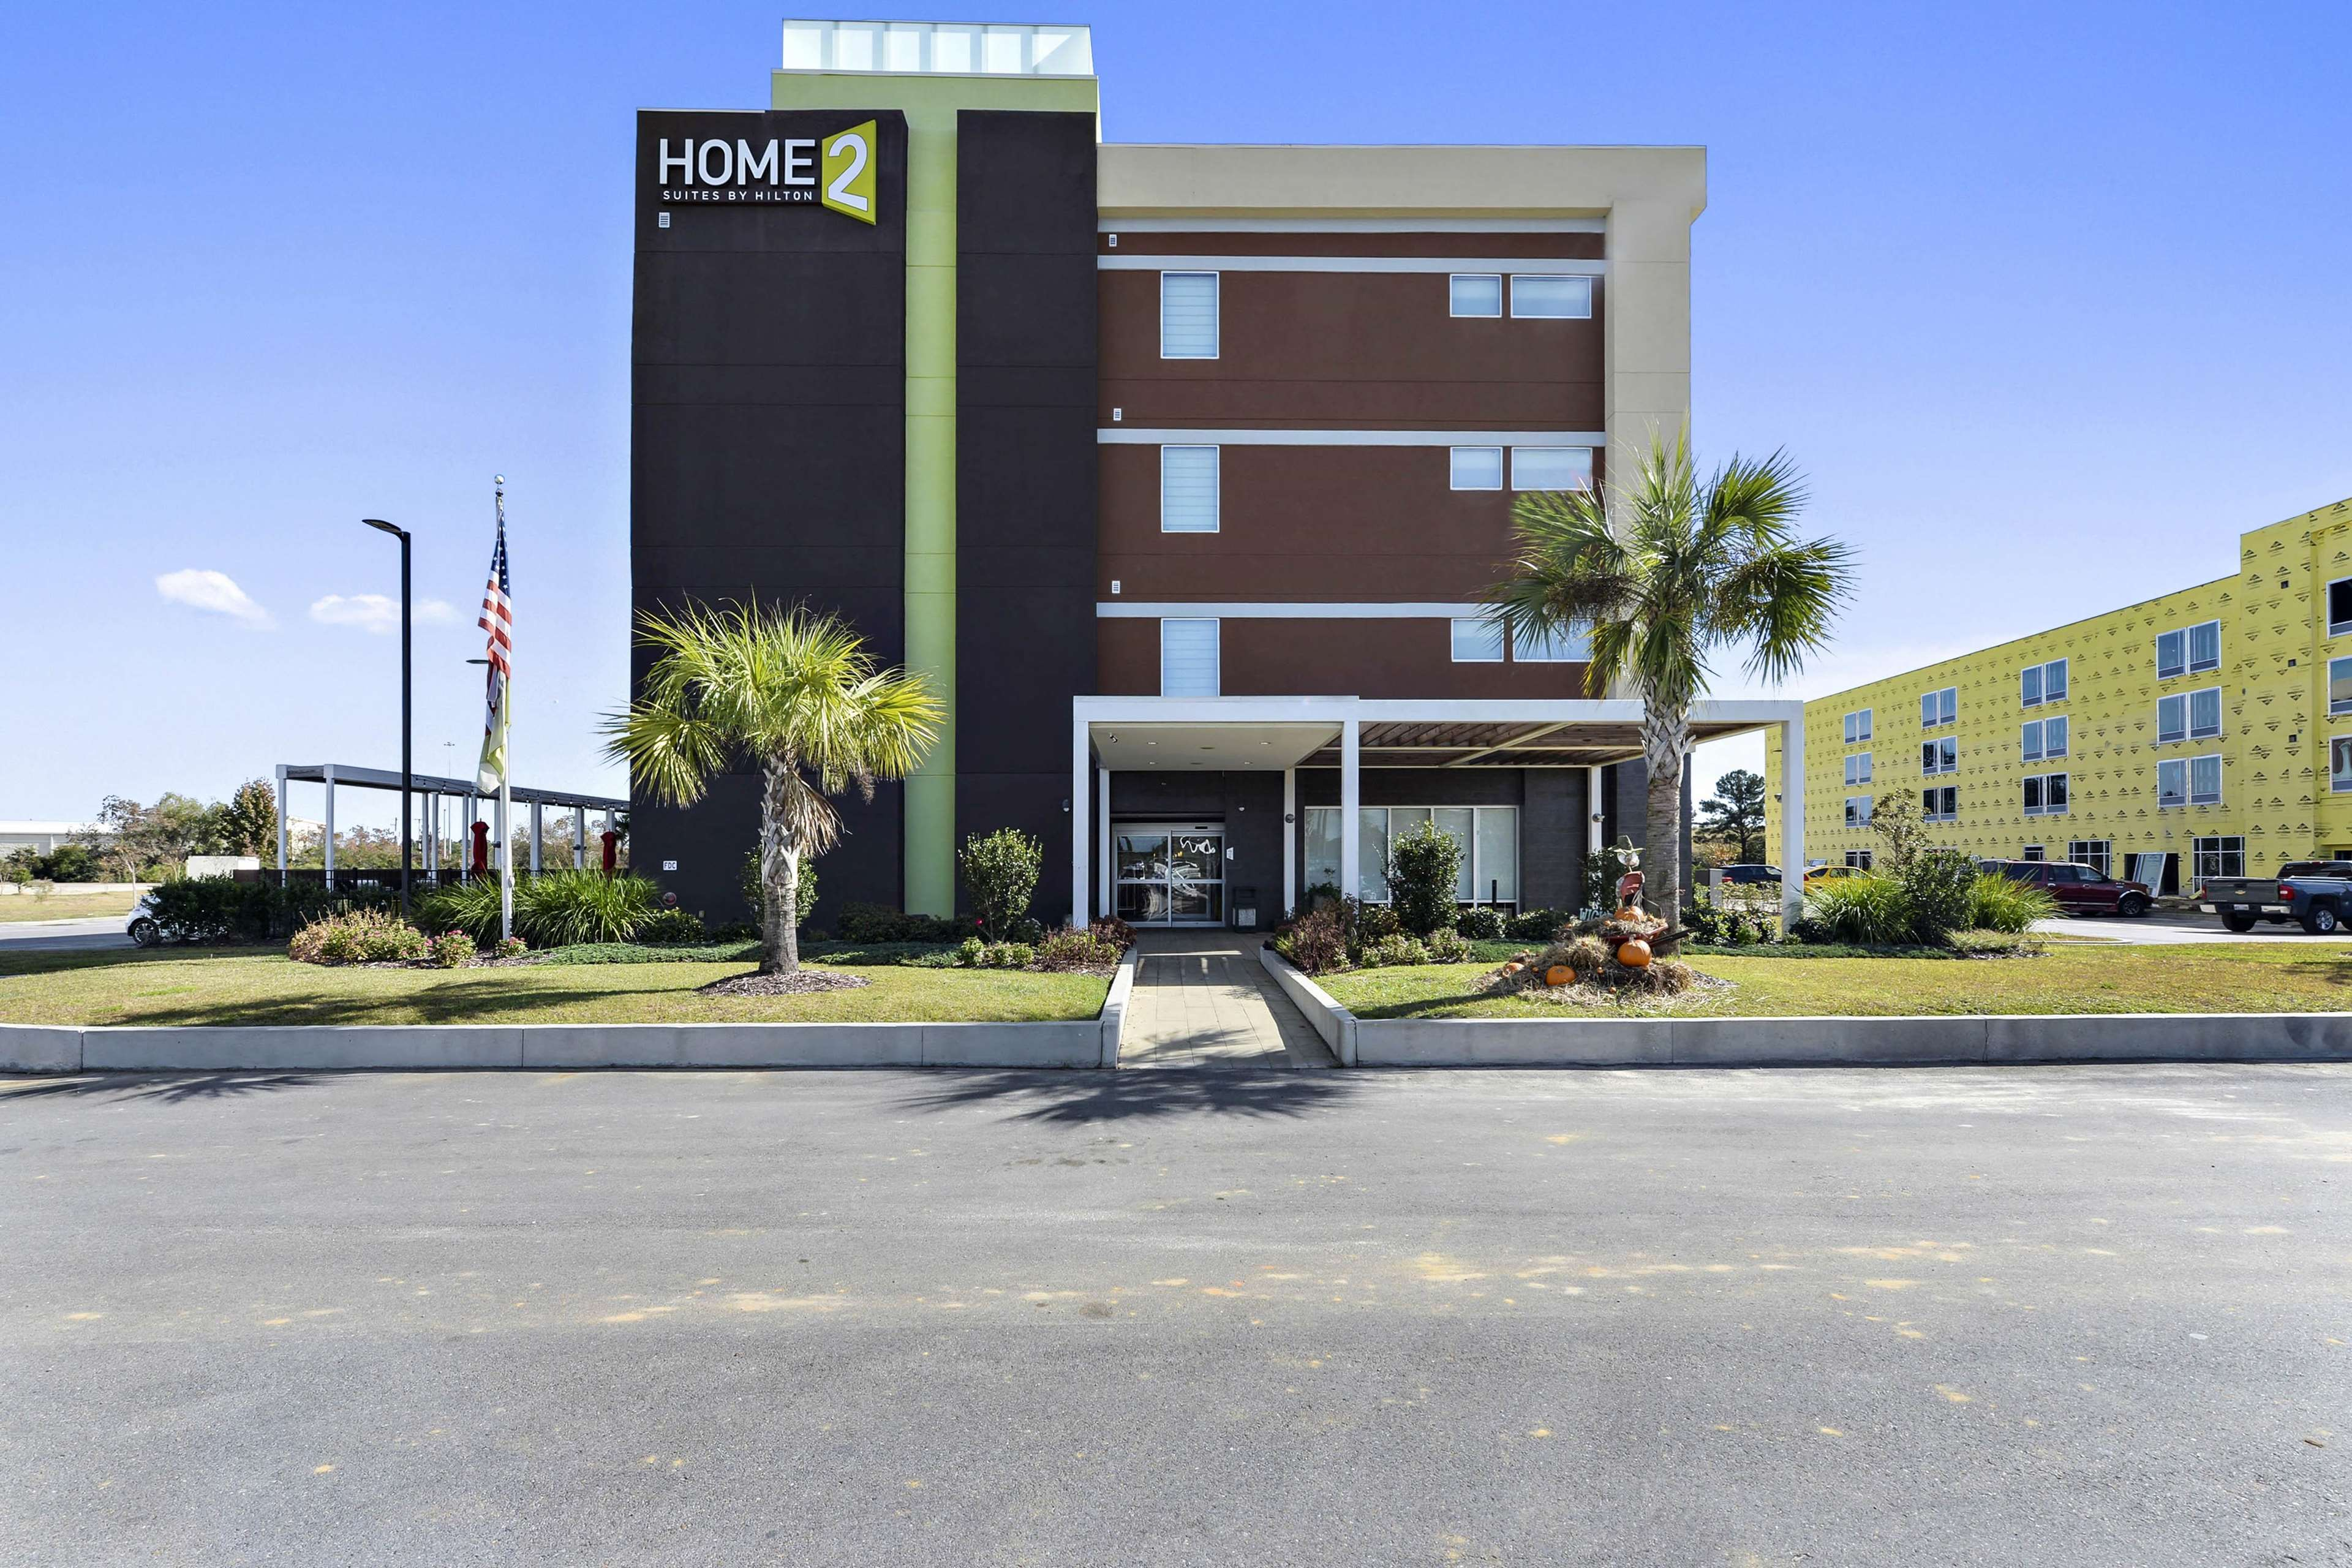 Home2 Suites by Hilton Gulfport I-10 image 0